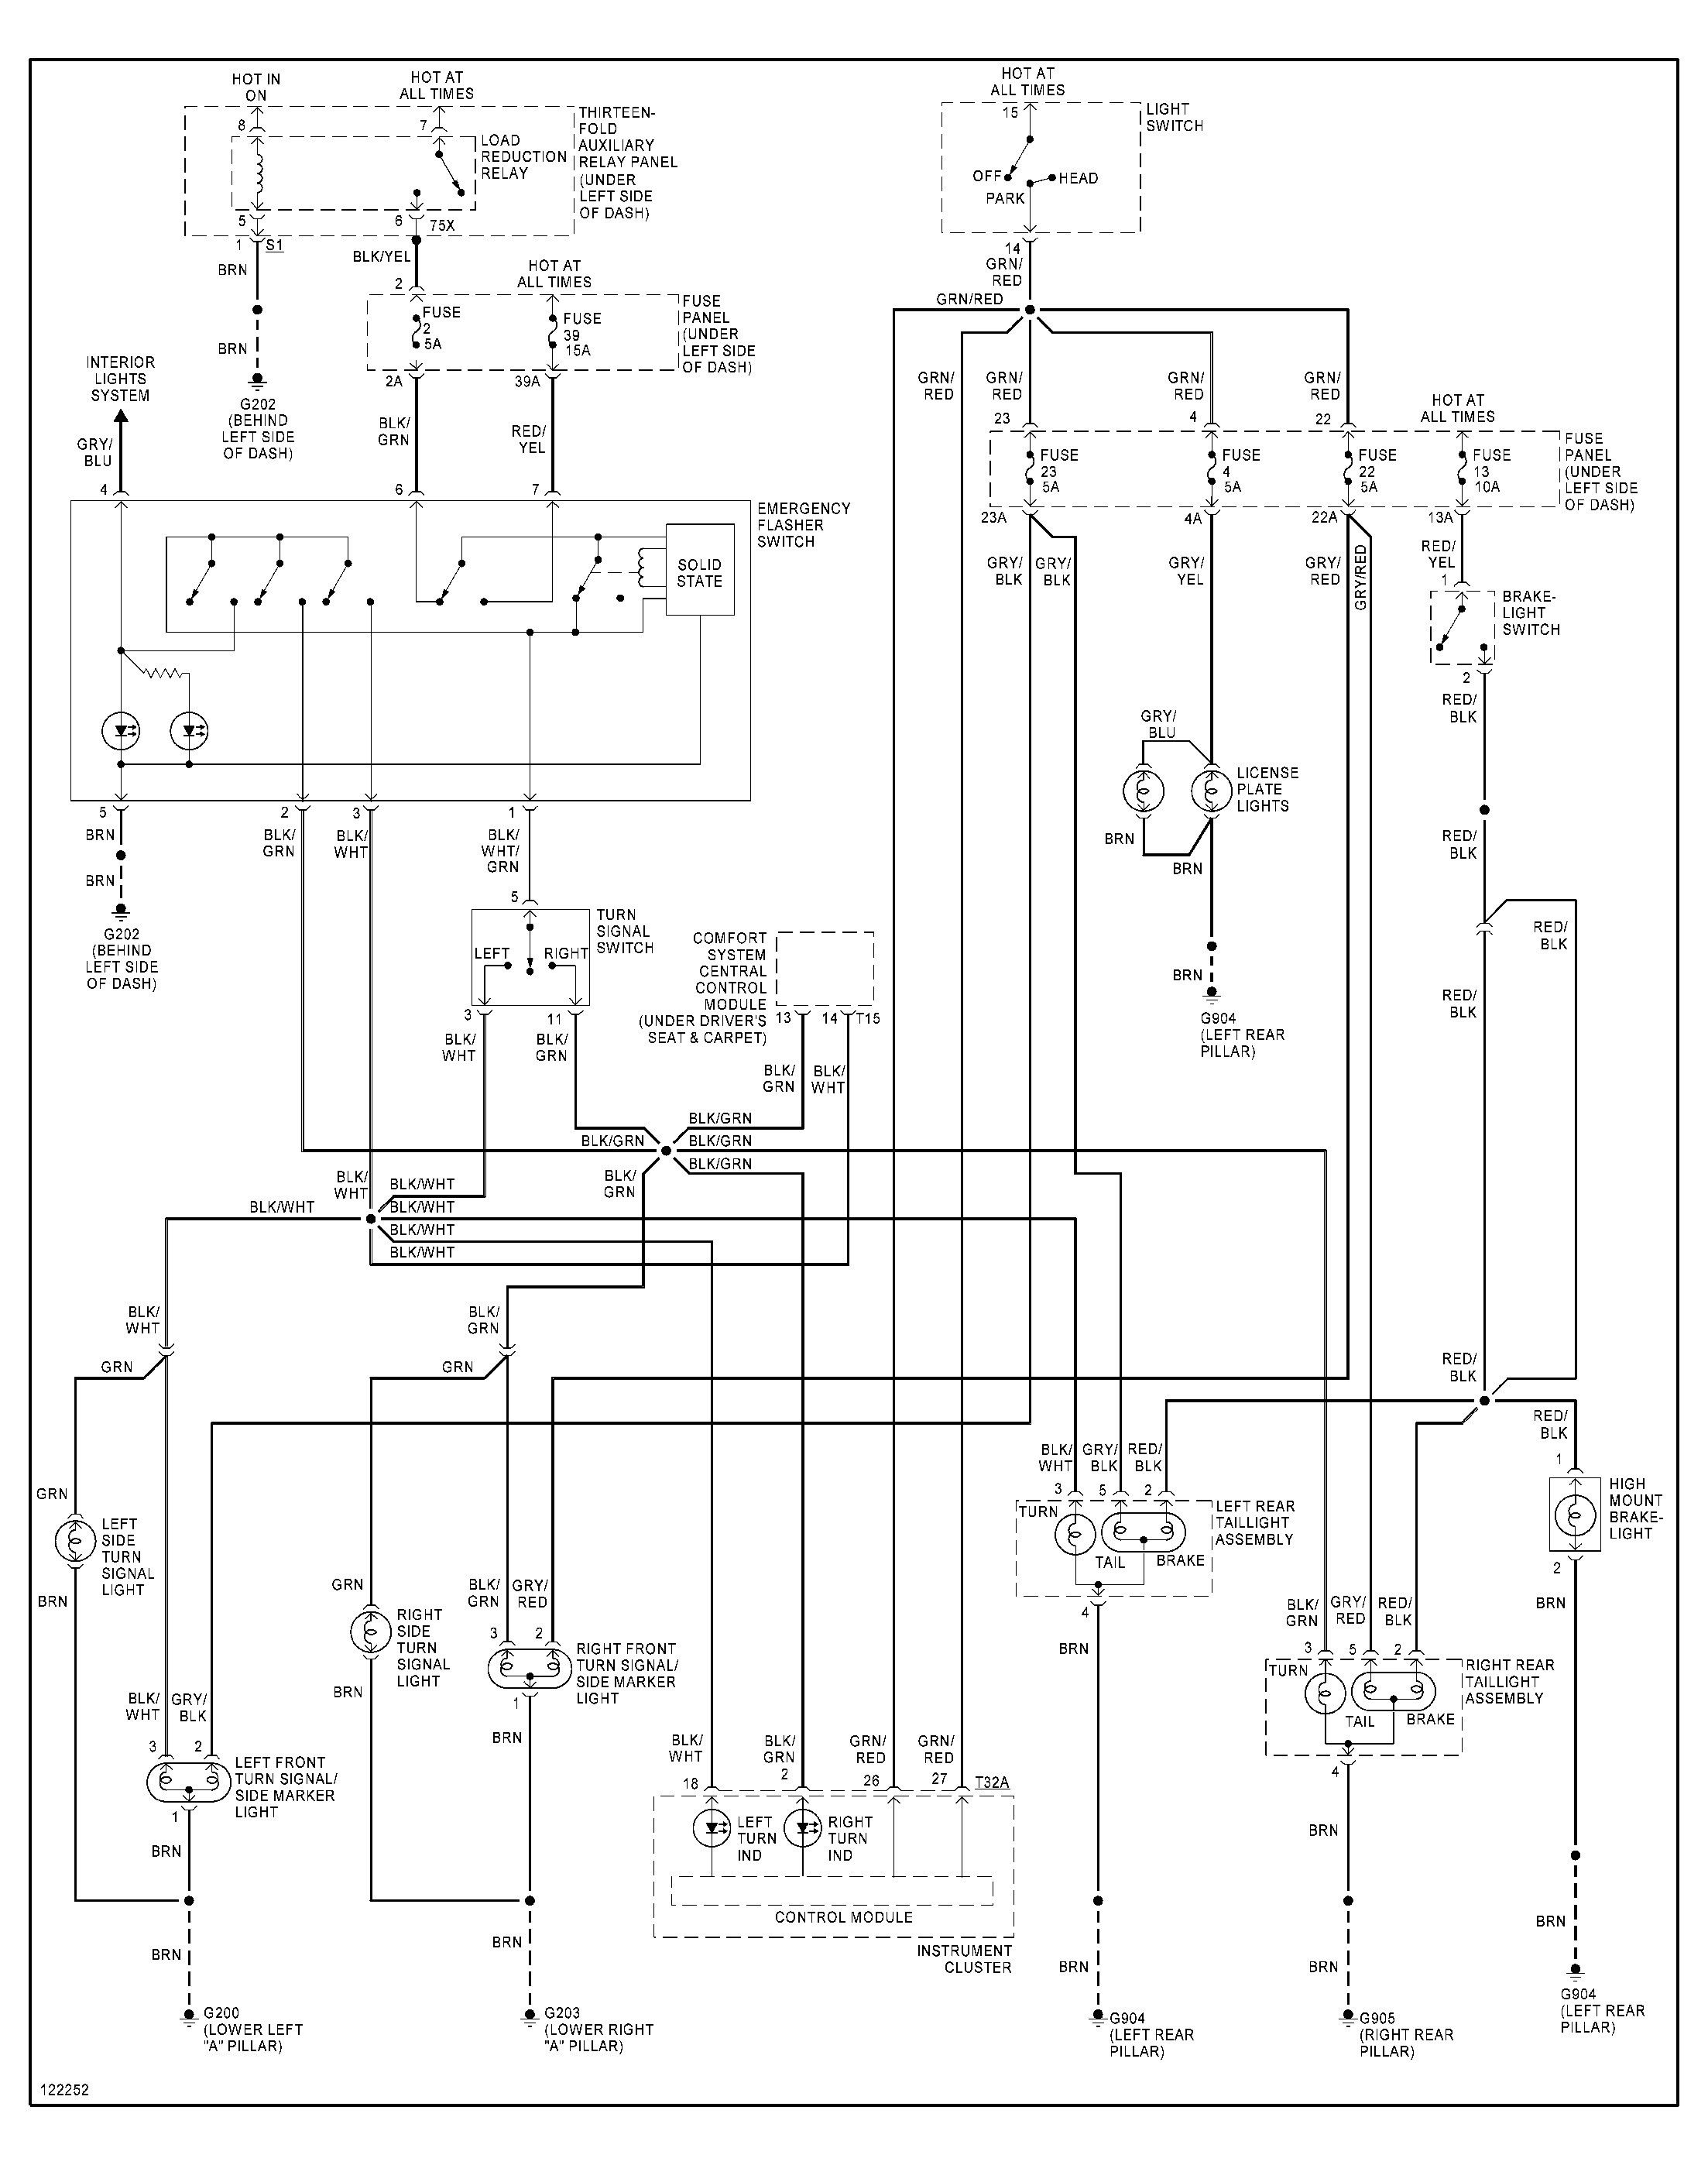 Unique Audi A4 B8 Headlight Wiring Diagram #diagram #diagramtemplate on audi a4 brakes diagram, audi a4 battery diagram, audi a4 wiring harness, audi a4 seats, 2006 audi a6 fuse diagram, audi a4 instrument cluster, audi a4 speakers, audi a4 schematic, audi a4 starter diagram, audi a4 radio, audi a4 1.8t engine diagram, audi a4 fuse diagram, audi a4 sunroof, audi a4 stereo system, audi a4 fuse box location, audi a4 b6 wiring diagram, 2002 audi a4 relay diagram, audi a4 electrical diagram, audi tt wiring diagram, audi a4 car,